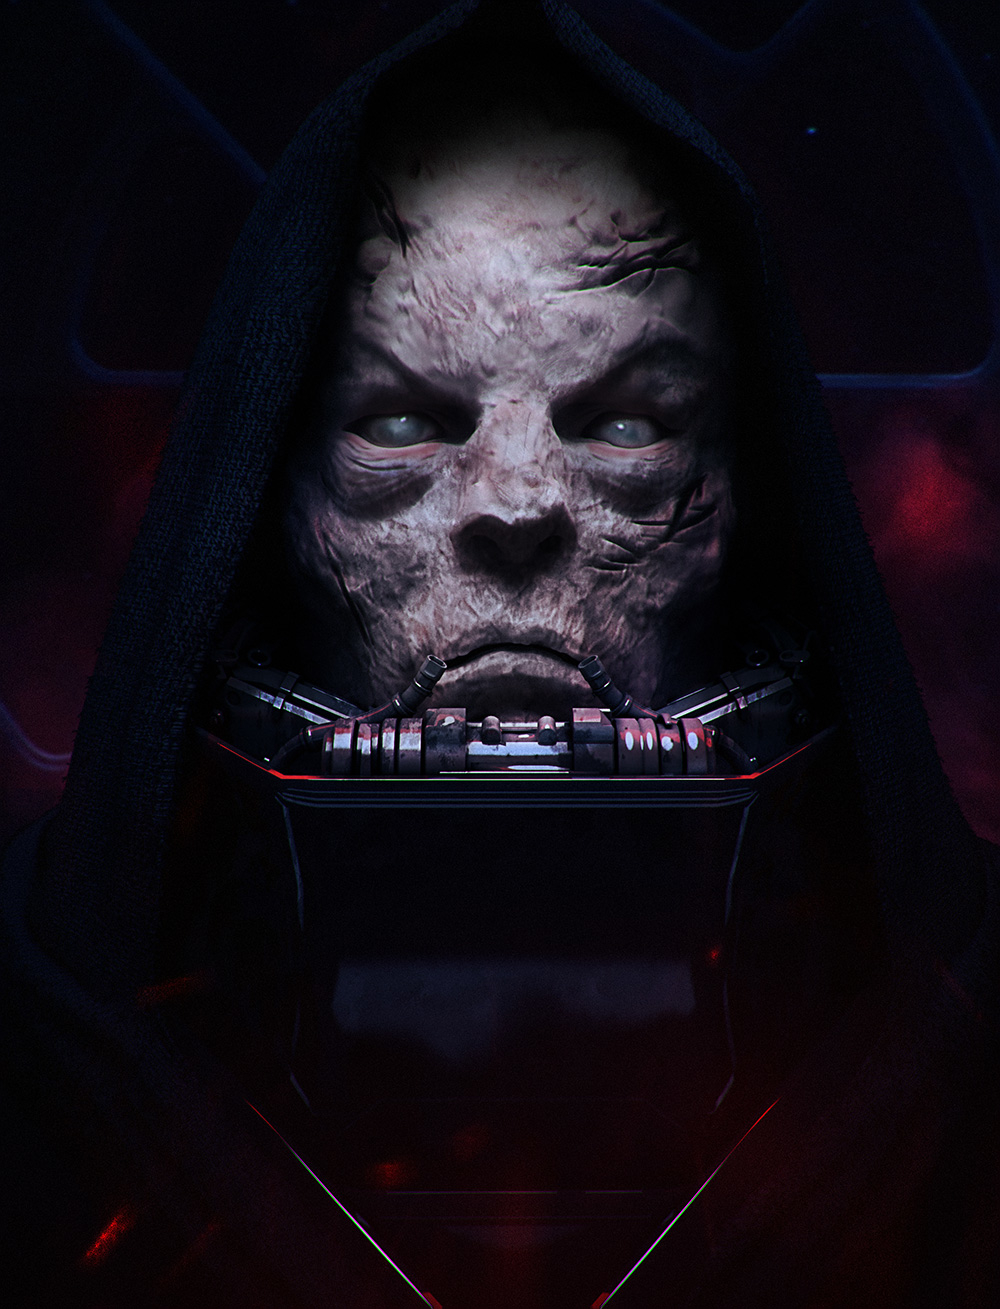 Macfixed vader the emperor 1 70ce1a7f 4vzv